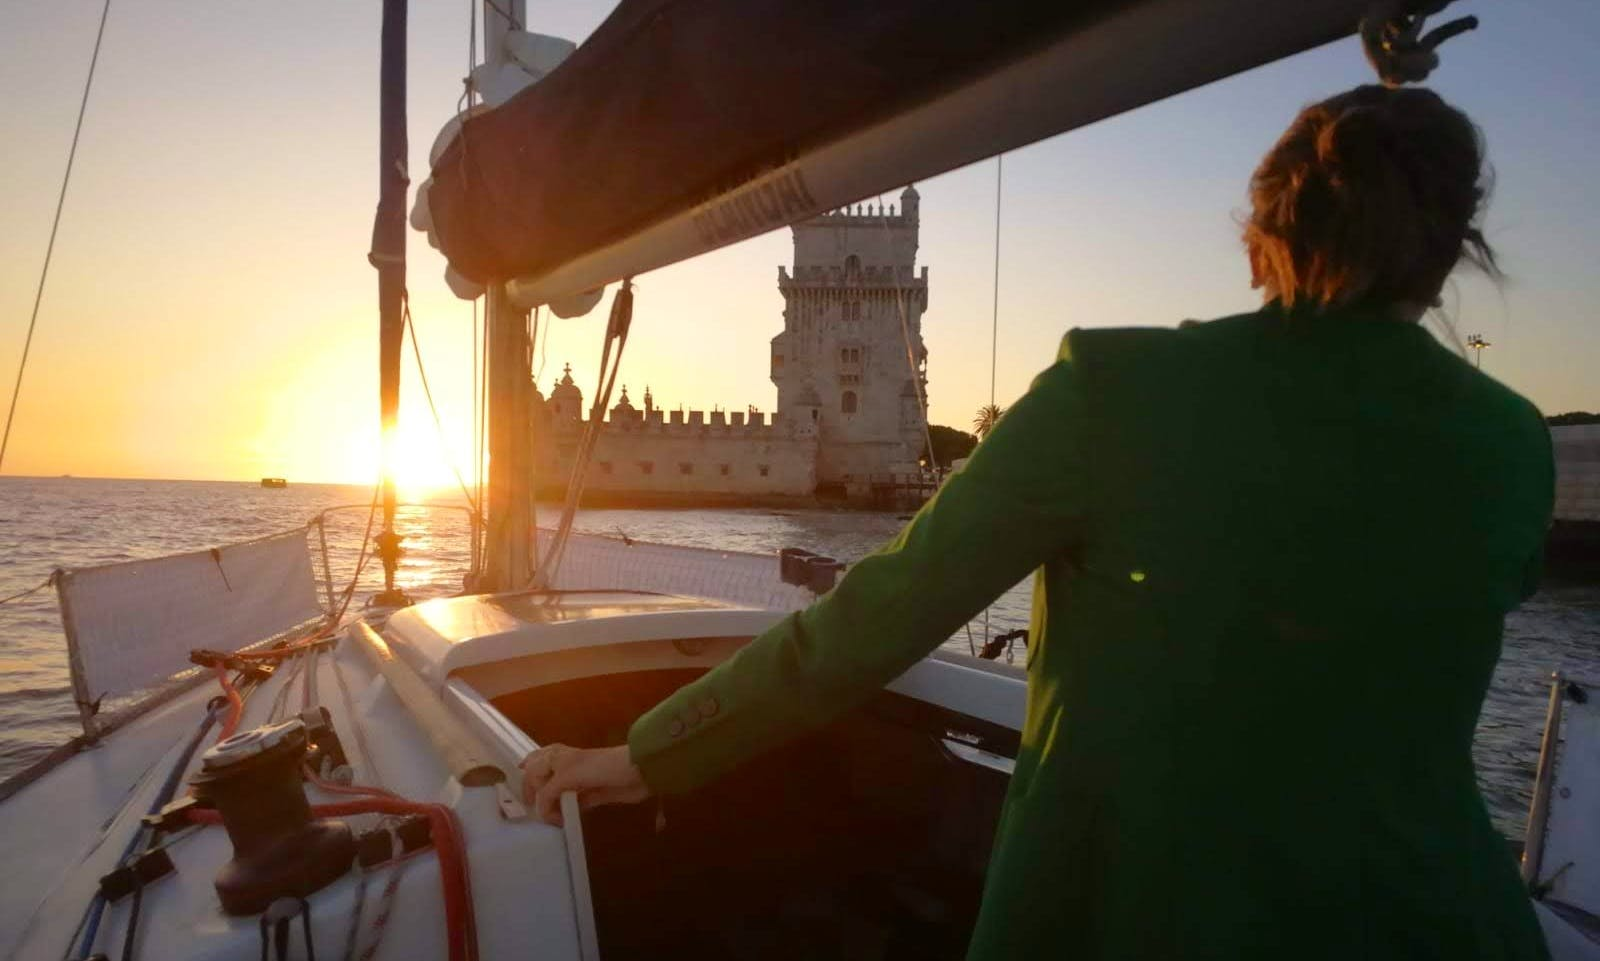 Let's sail in Lisbon, the adventure starts now!